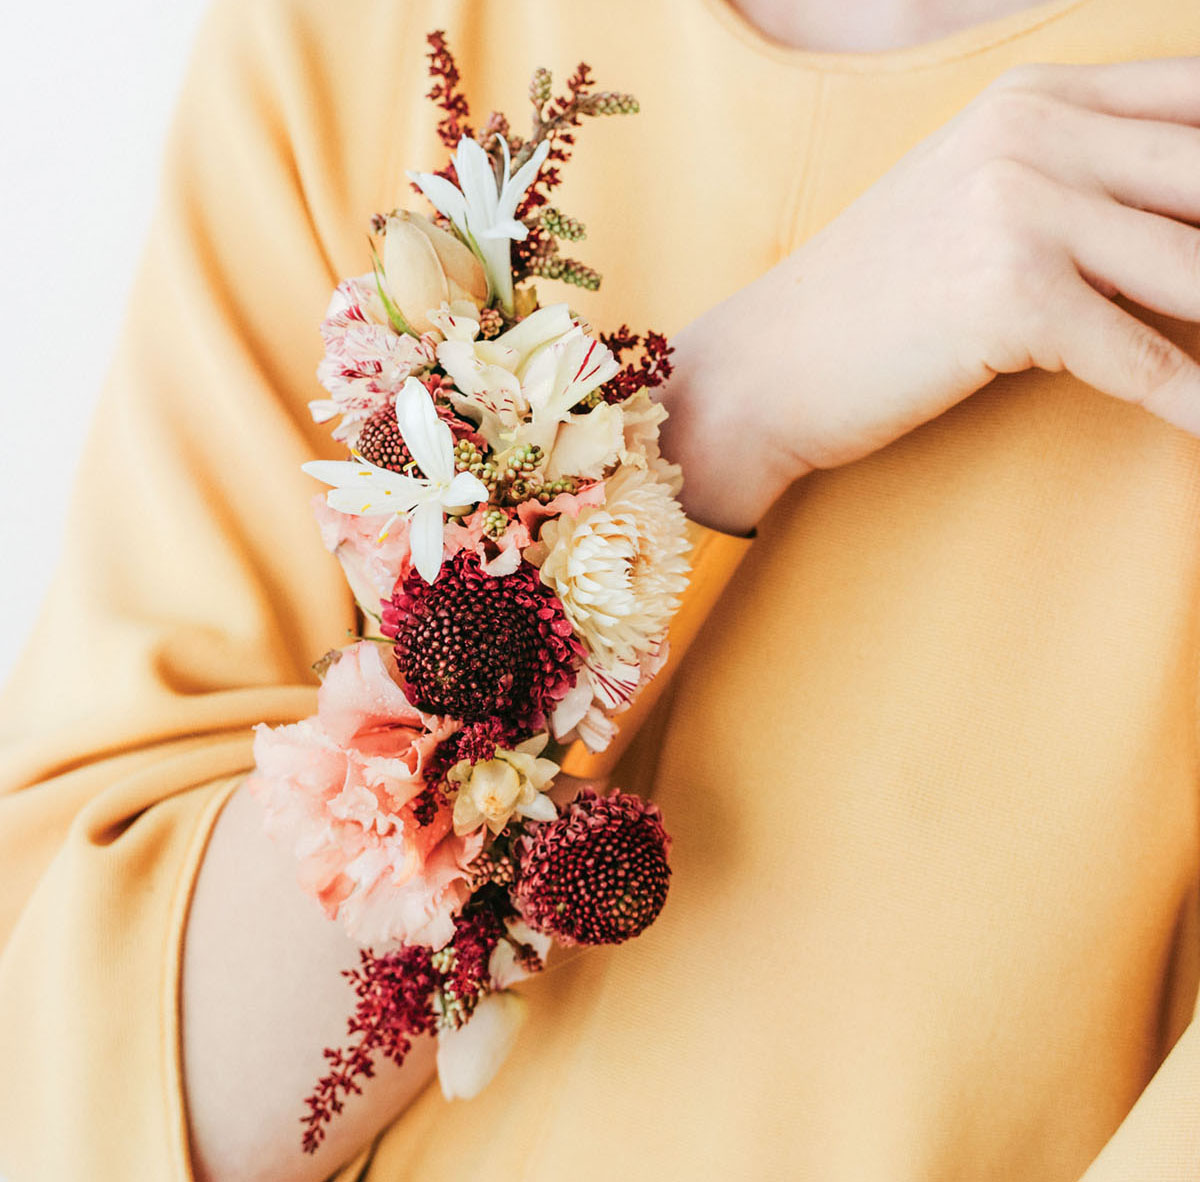 A model wears a floral cuff on her wrist featuring burgundy, cream, and peach-colored fresh flowers